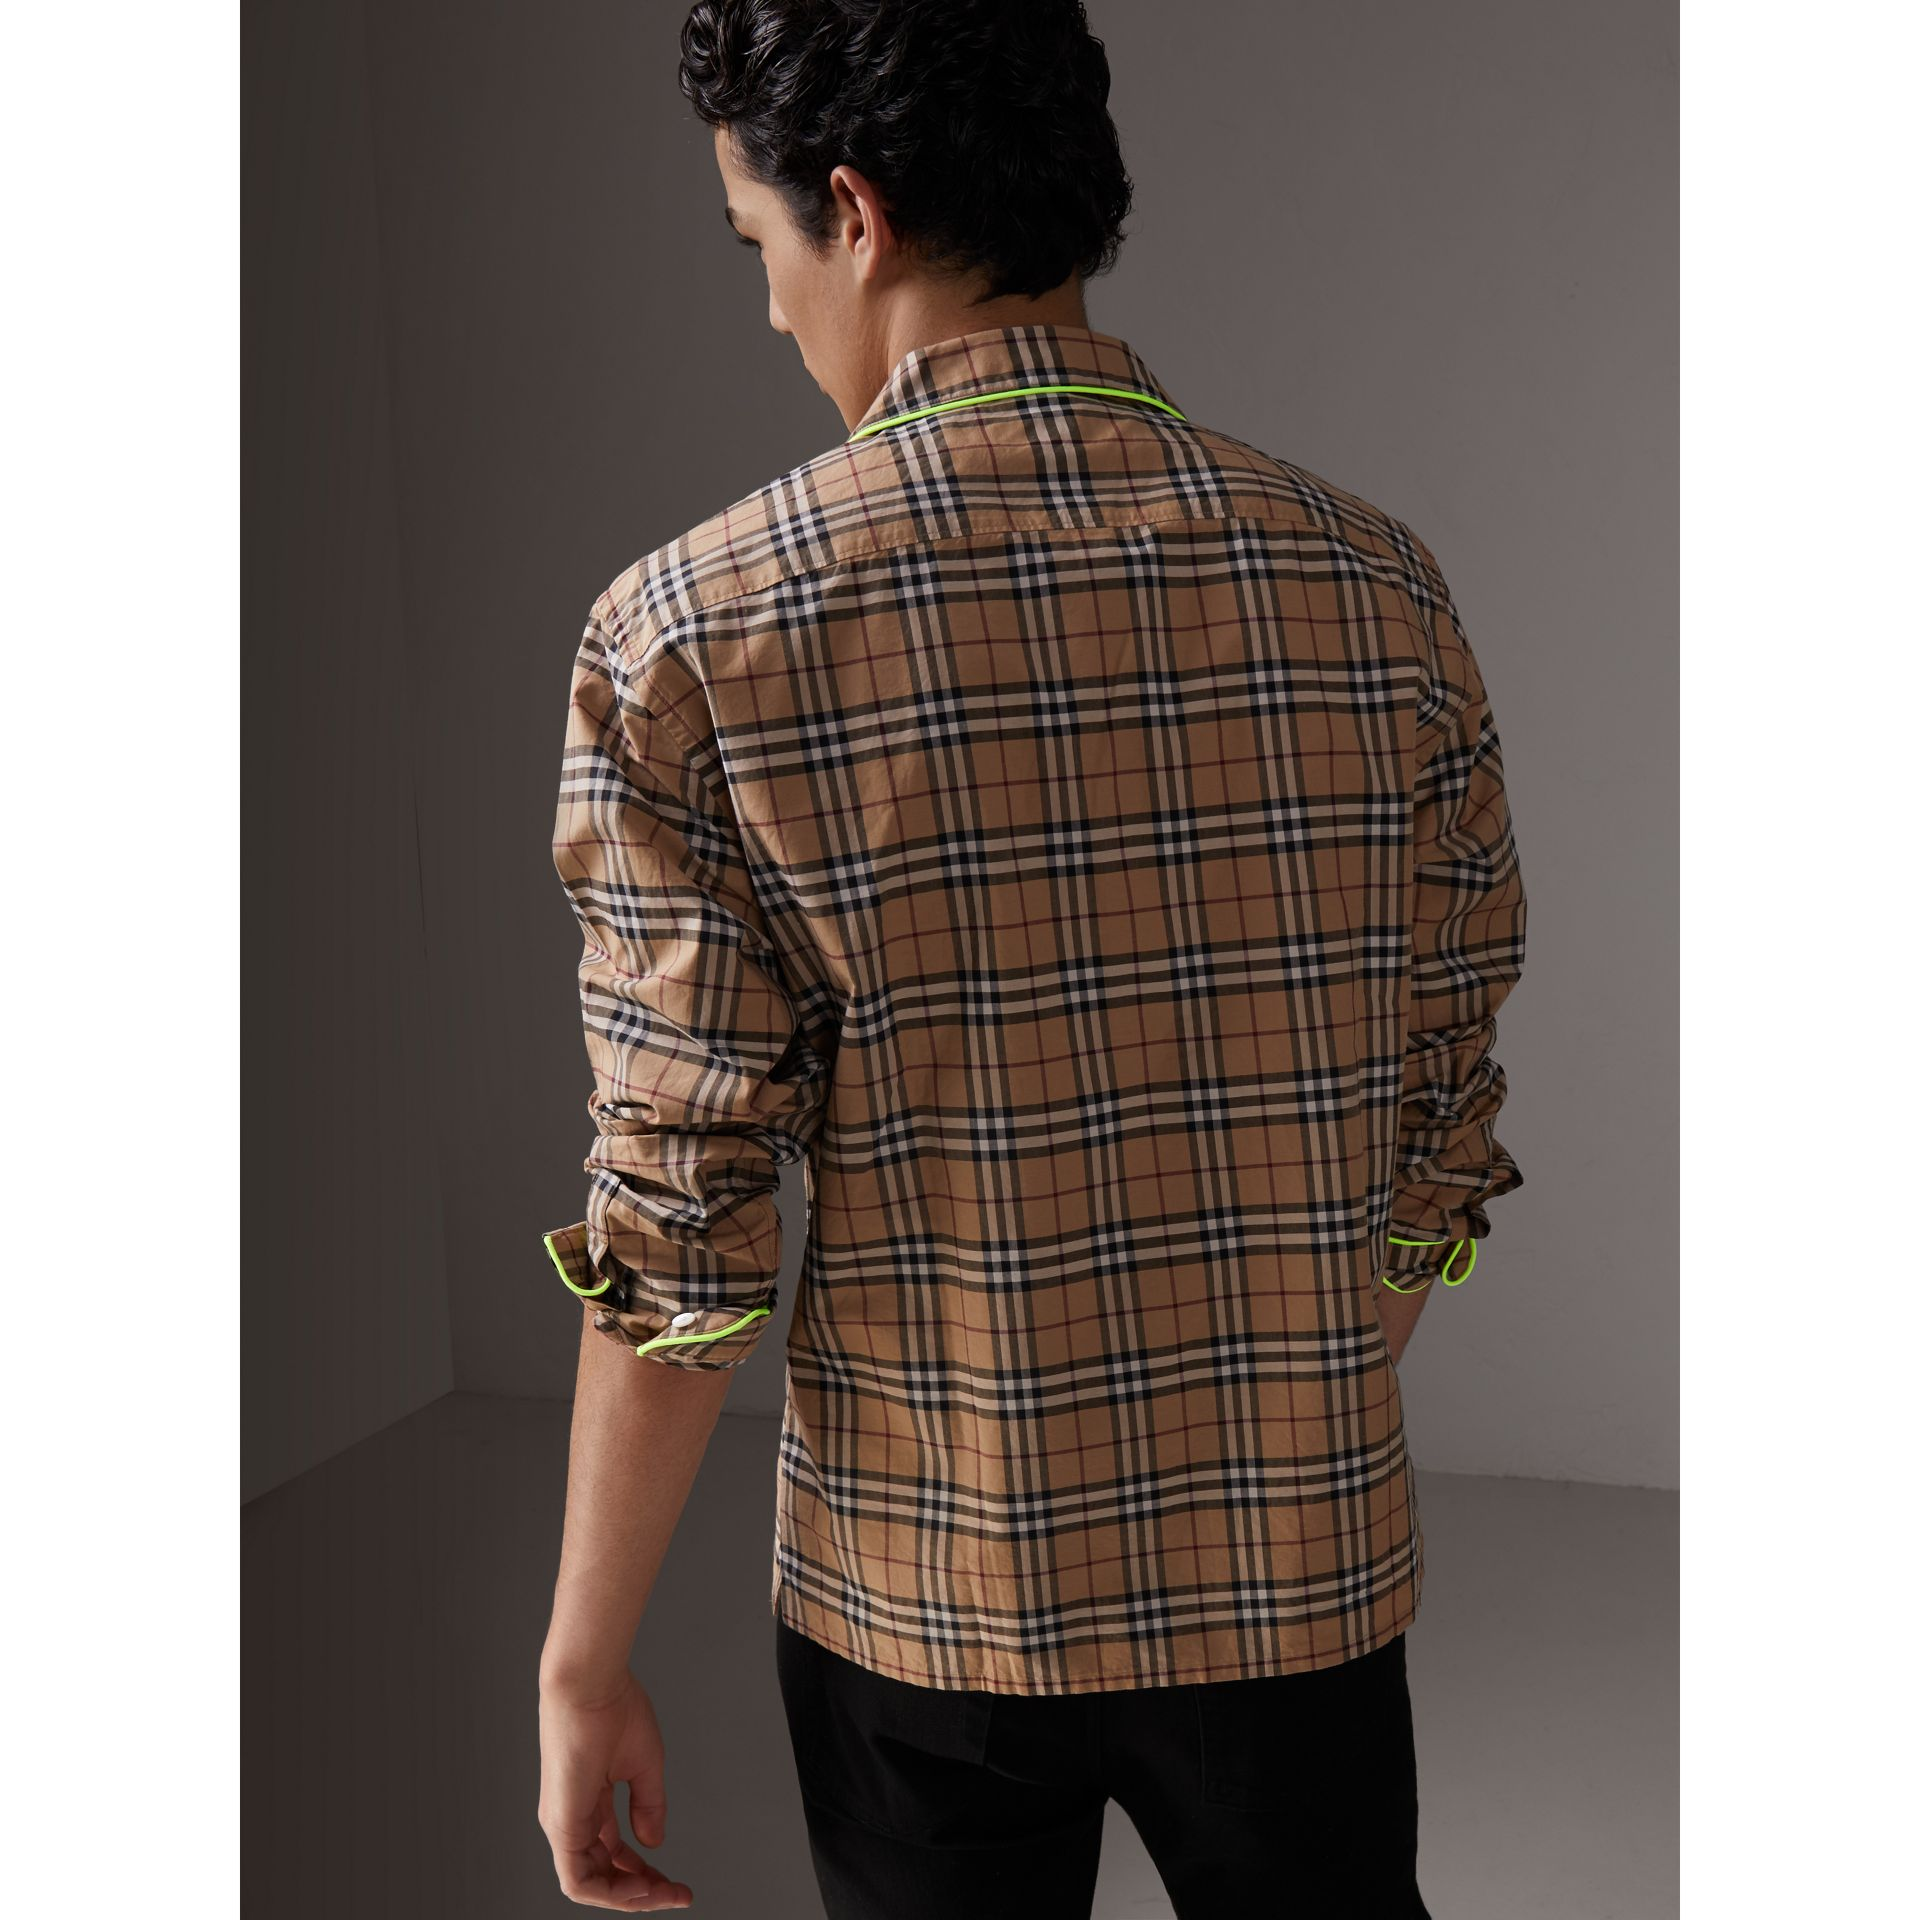 Contrast Piping Check Cotton Pyjama-style Shirt in Camel - Men | Burberry United States - gallery image 2